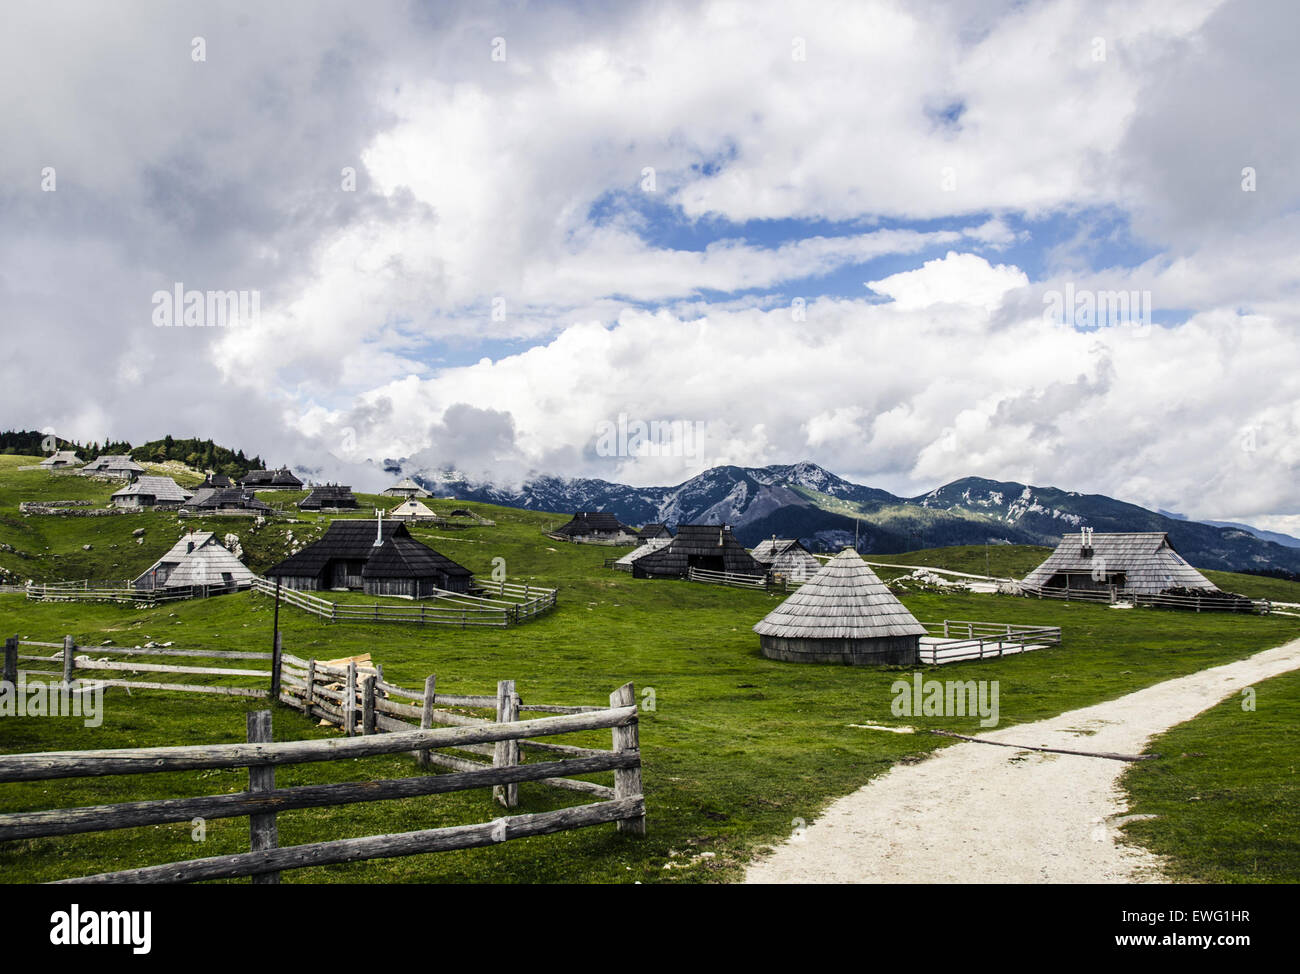 Path by Huts in Mountainous Region Clouds Cumulus fence homes houses huts landscape mountain outdoor path sky - Stock Image